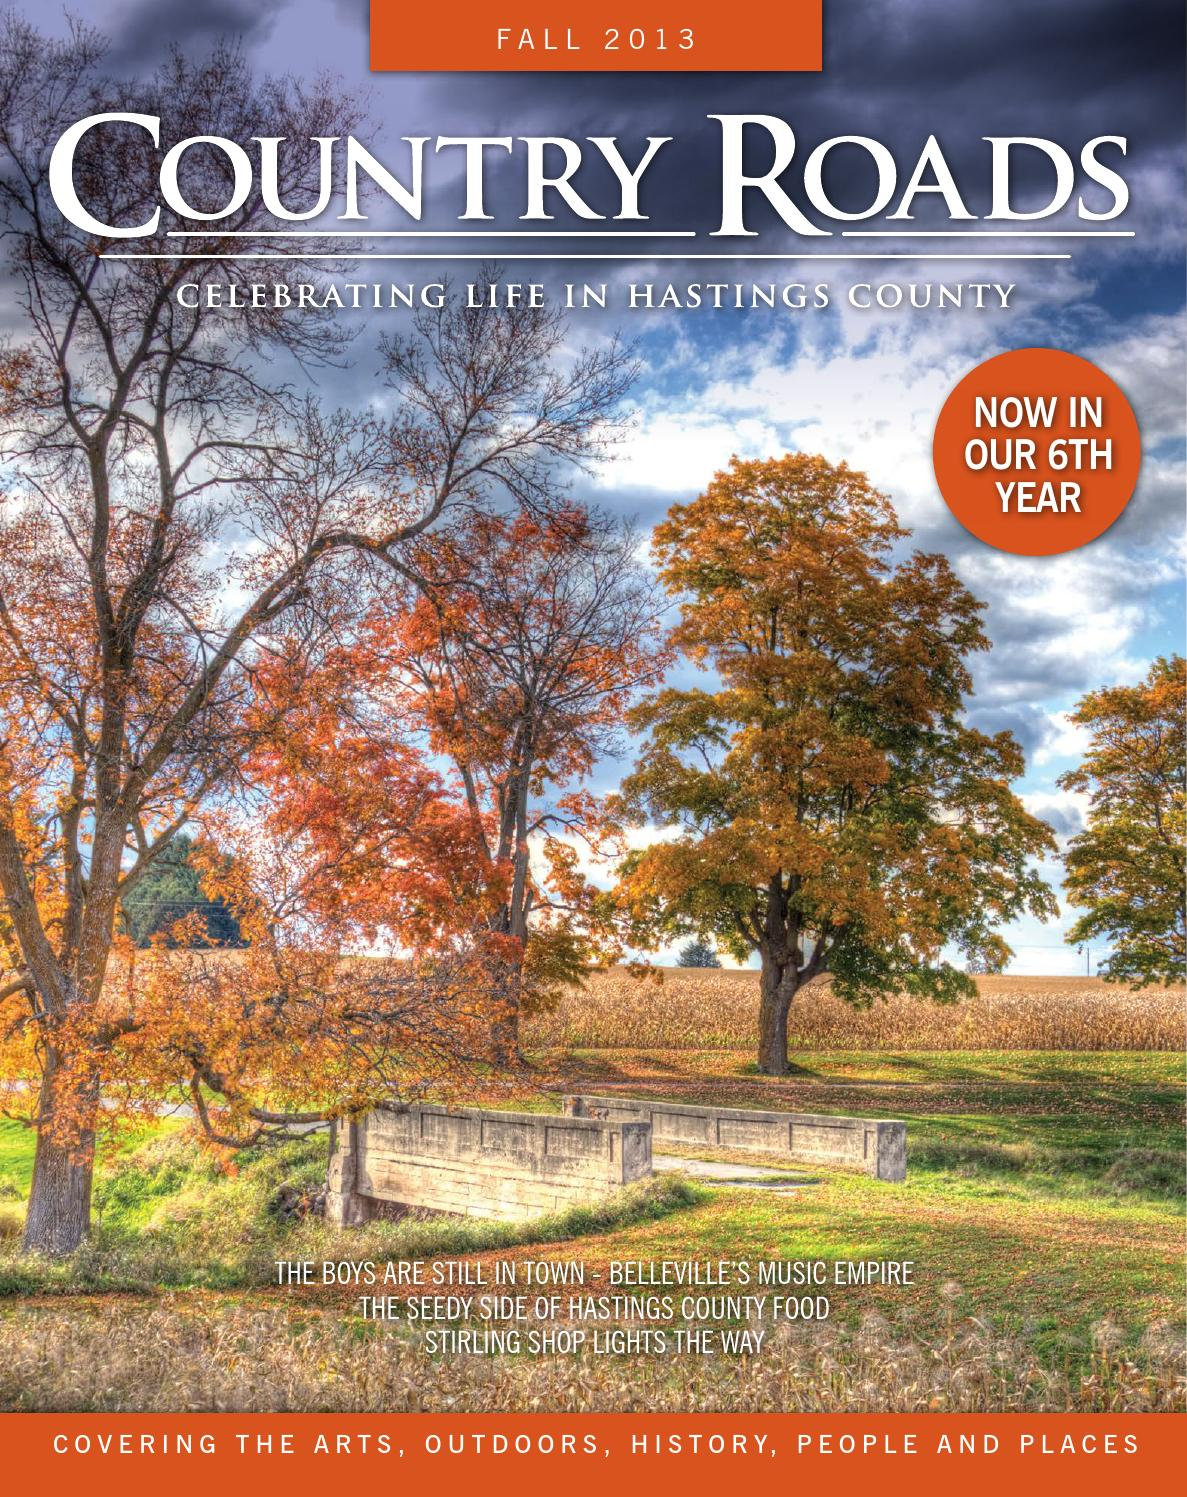 COUNTRY ROADS, Celebrating Life in Hastings County, FALL